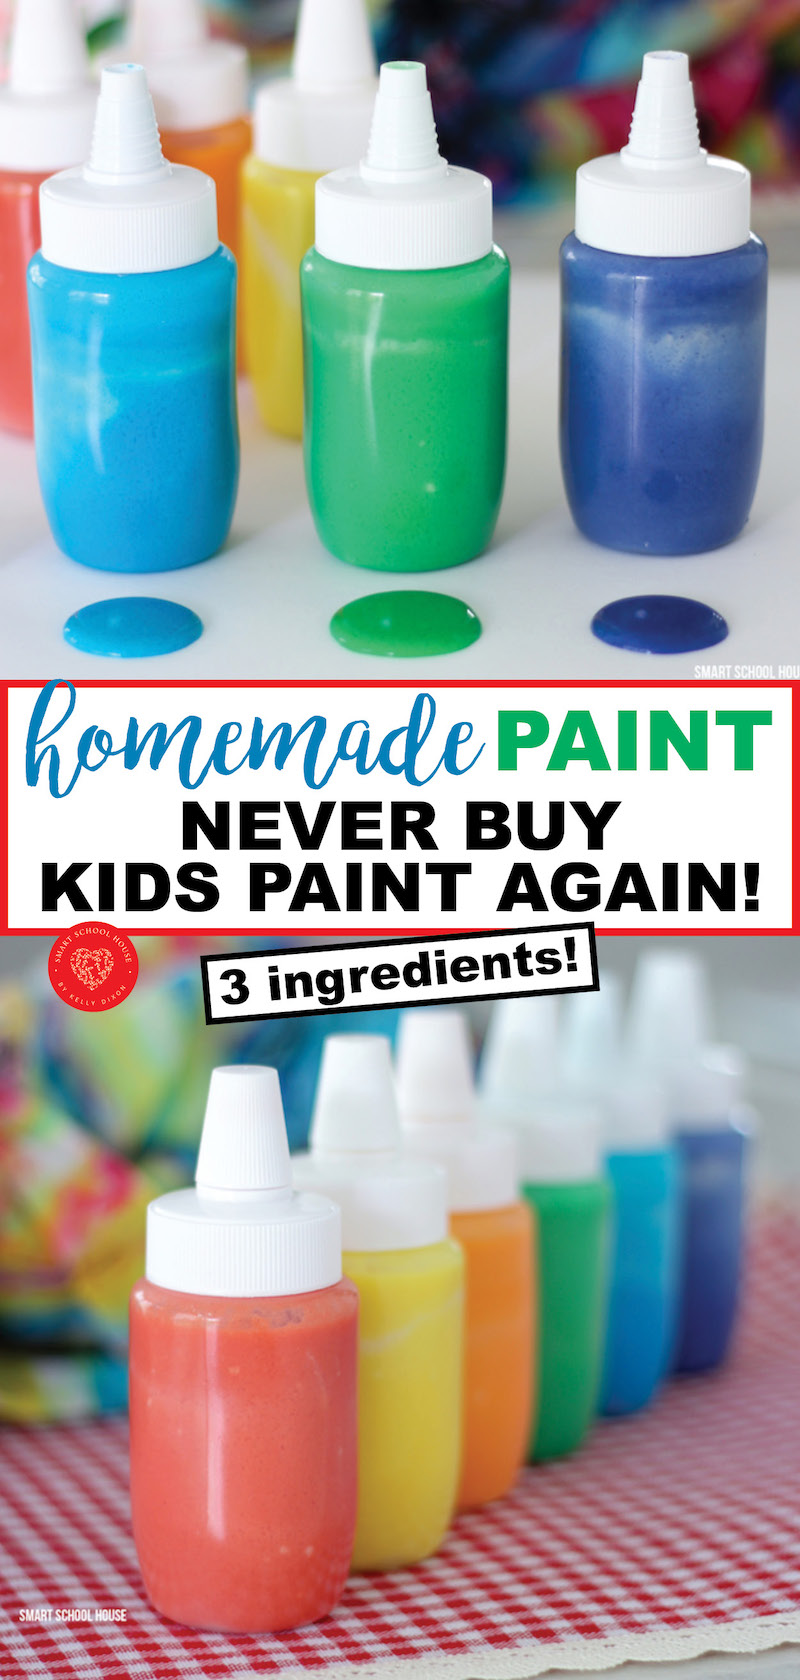 3 ingredient homemade paint. Never buy kids paint again!